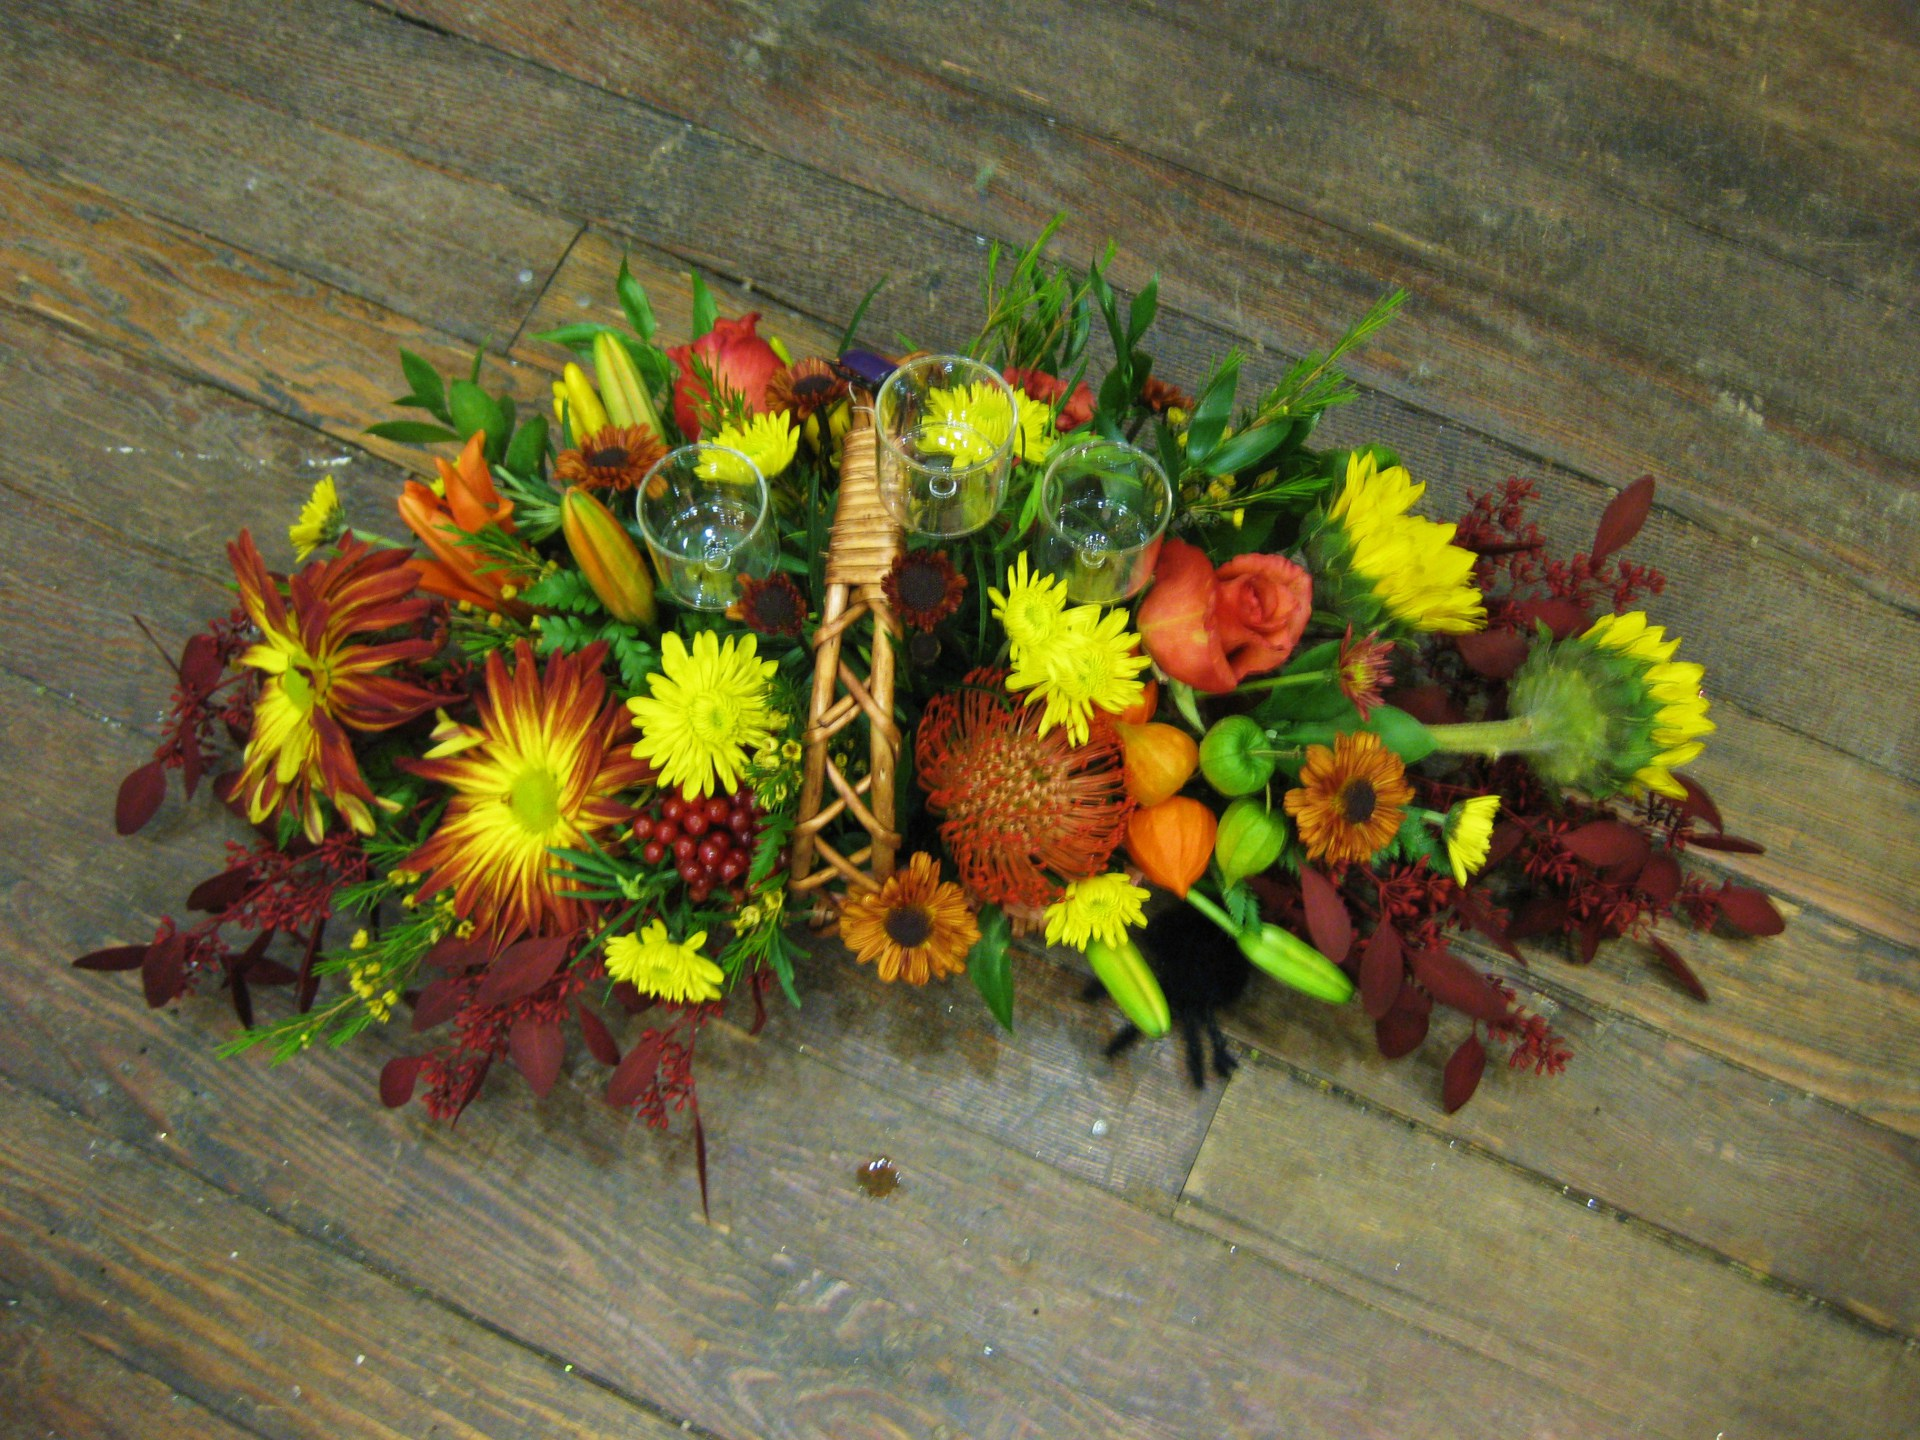 halloween, fall, autumn, happy, cheerful flowers, bouquet, entertainers, thanksgiving, centrepiece, sunflowers, vase, lumsden, regina, craven, regina beach, buena vista